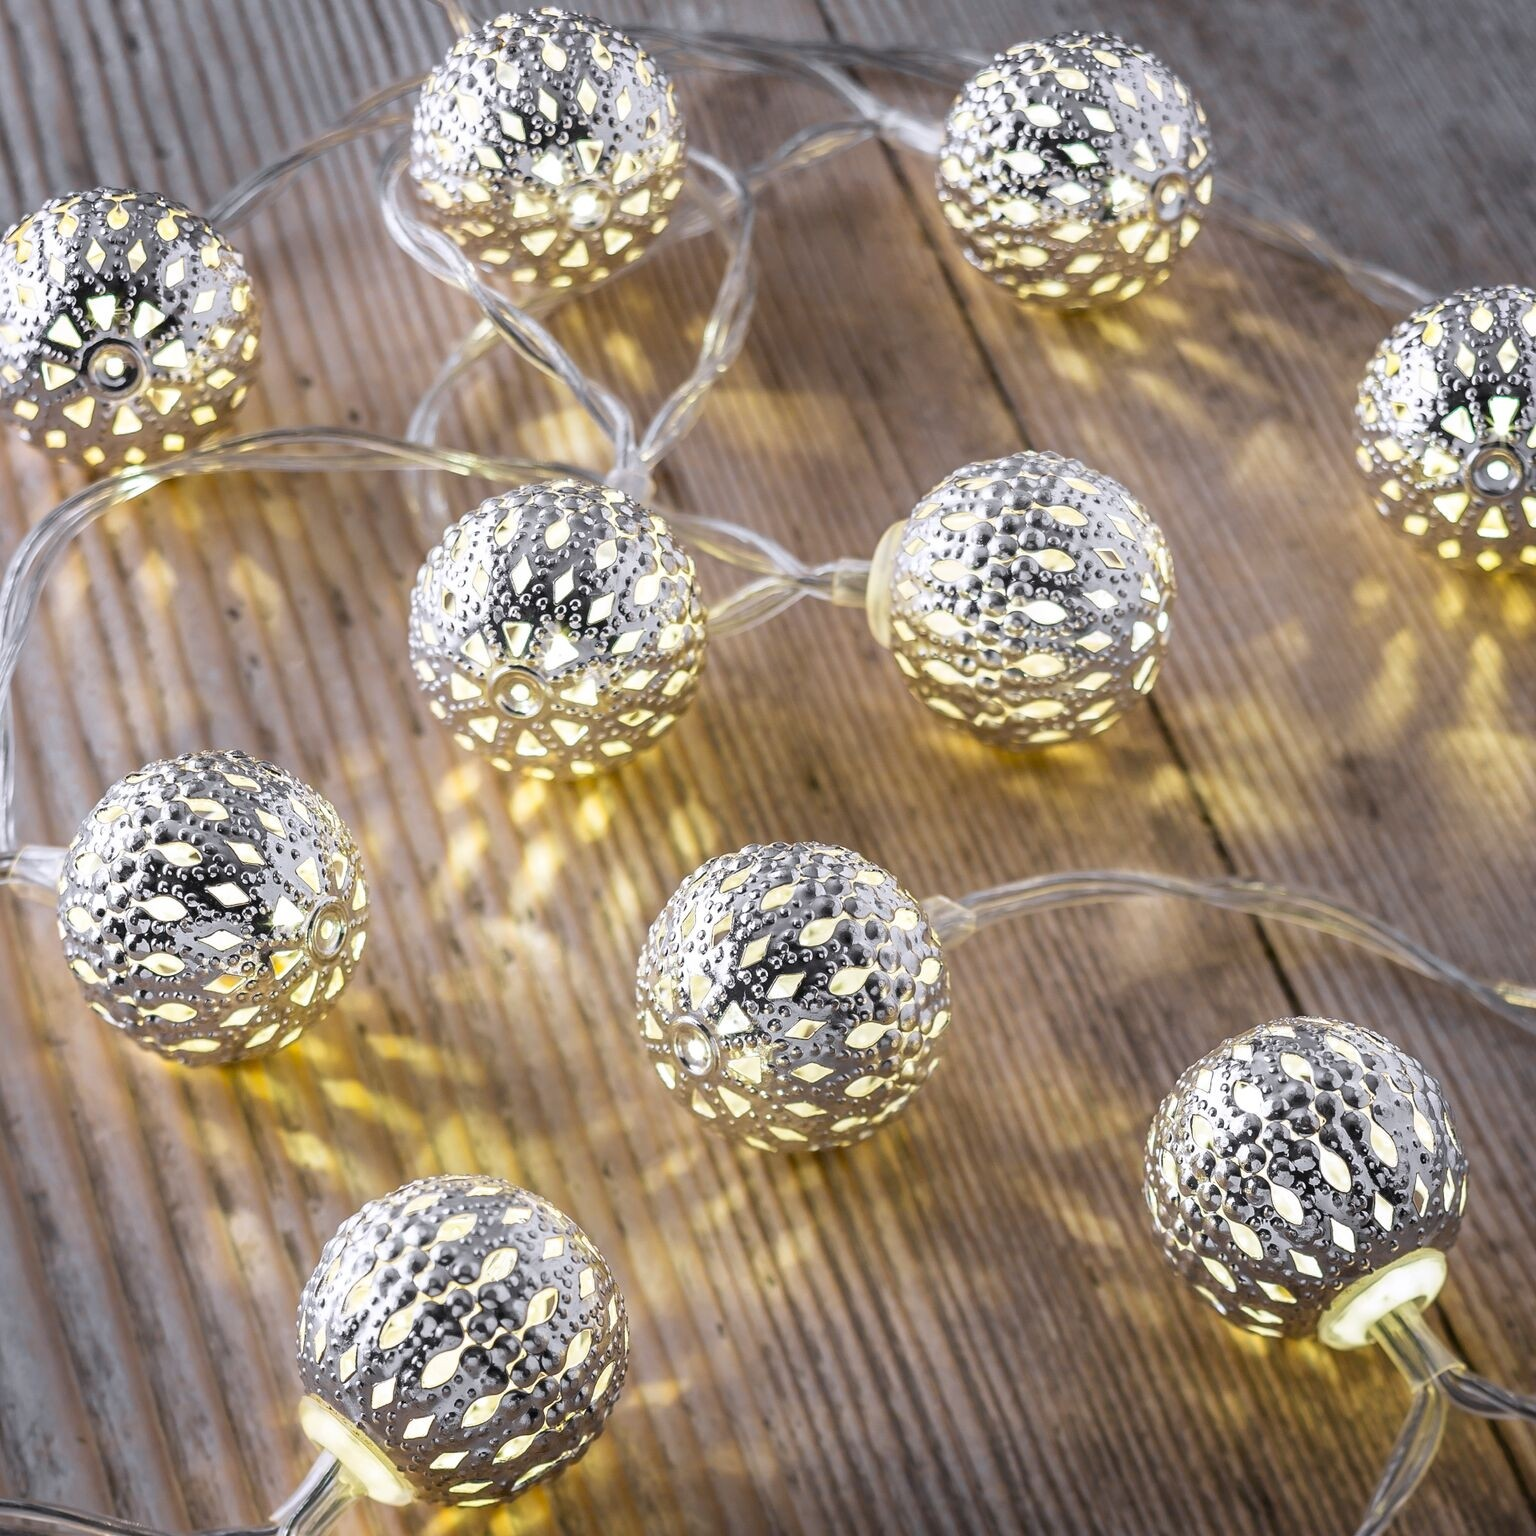 Set of 12 battery operated 25m indoor string lights mini maroq set of 12 battery operated 25m indoor string lights mini maroq balls mozeypictures Choice Image